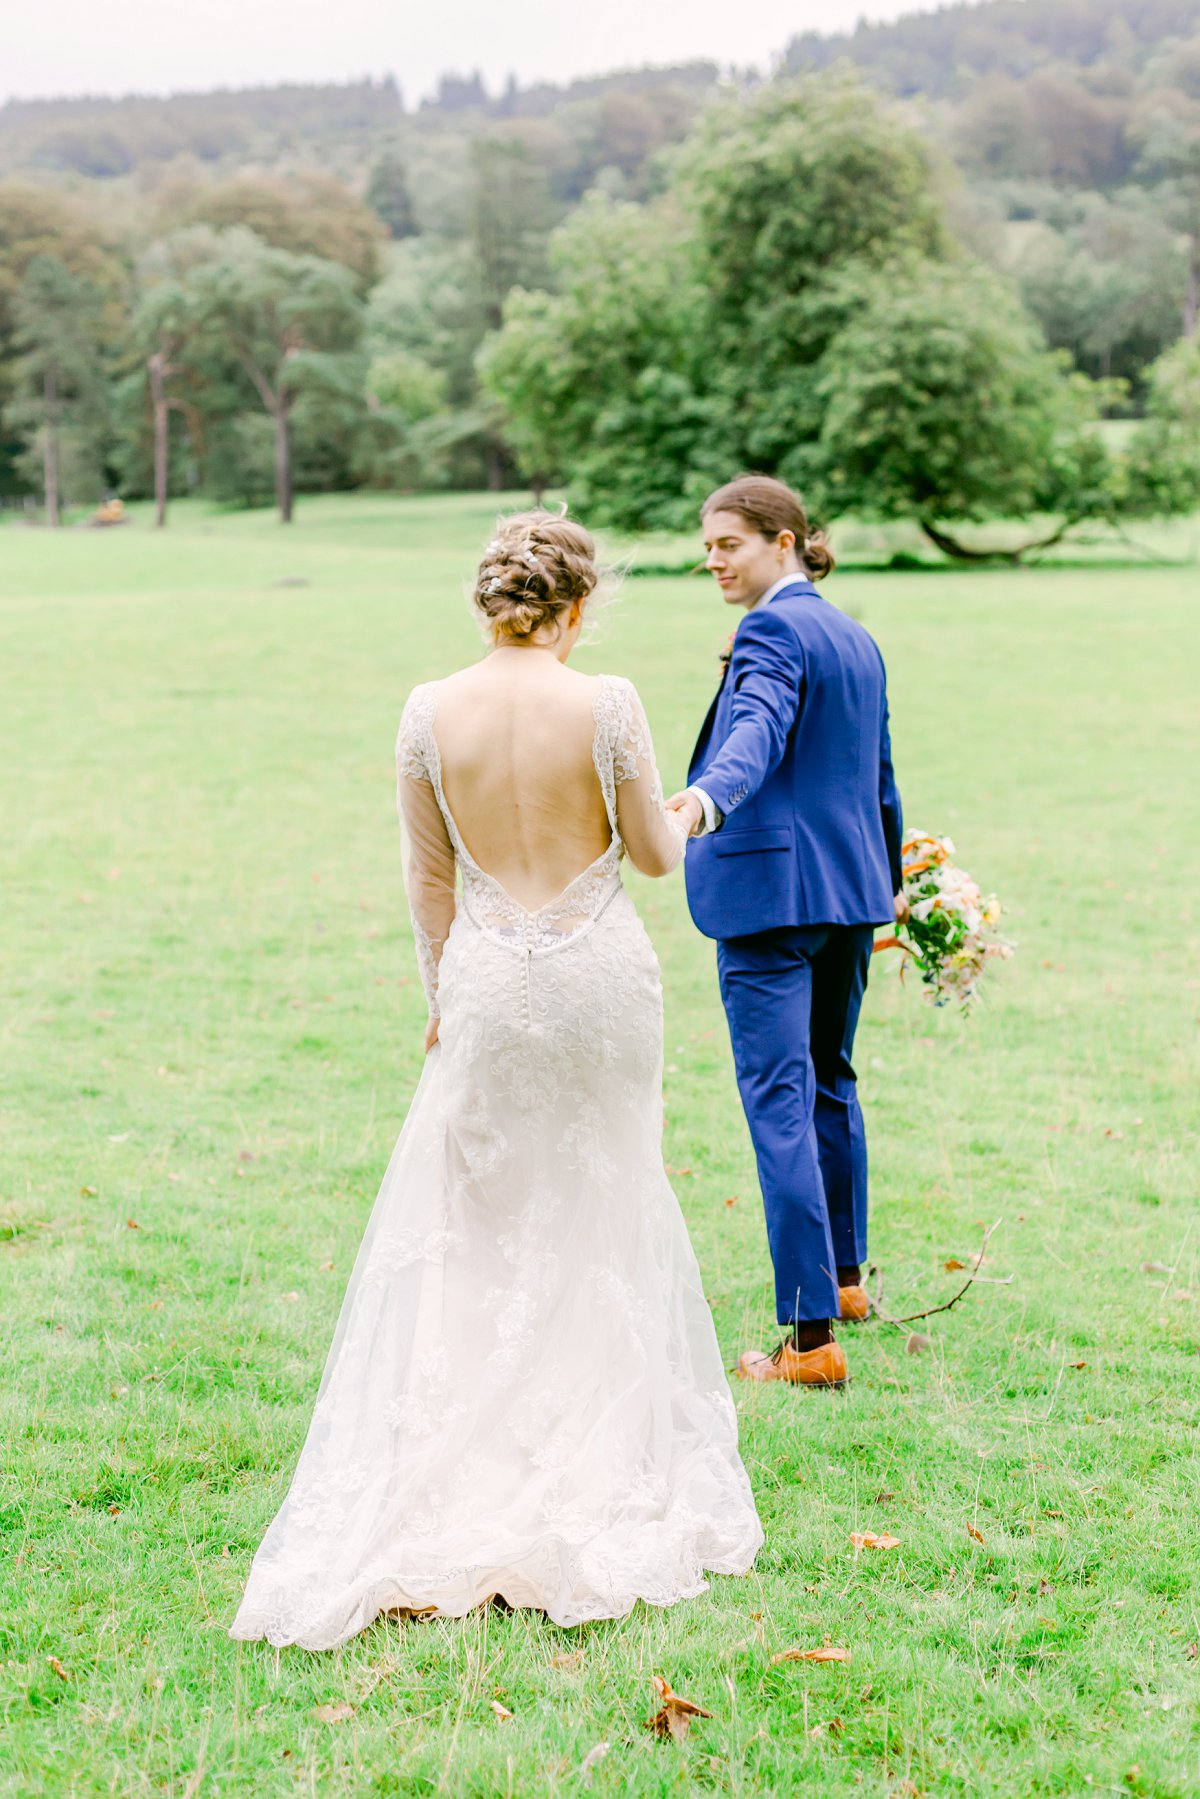 A Styled Wedding Shoot at Town Head Estate Windermere (c) Ailsa Reeve Photography (32)